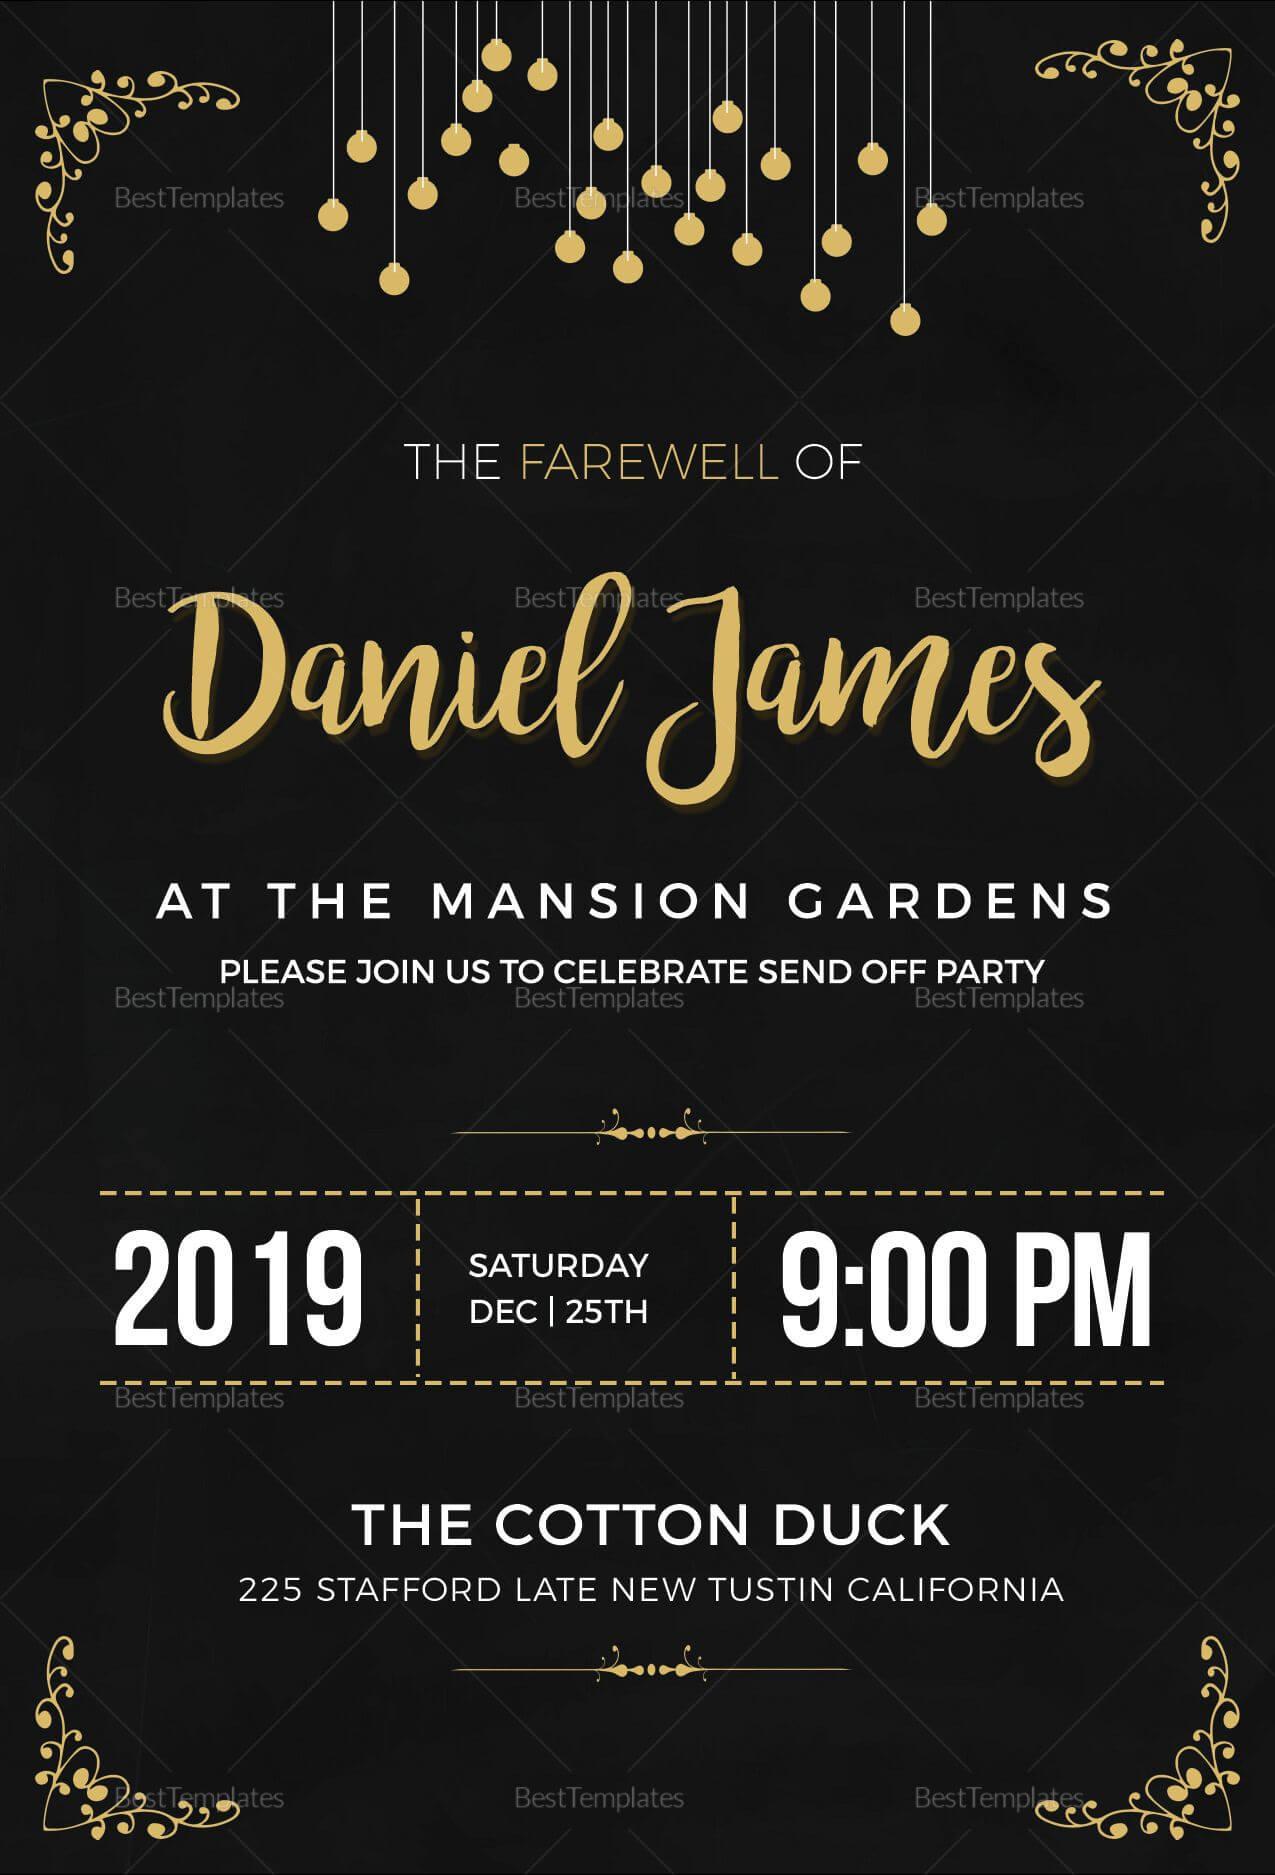 Farewell Invitation Card Template | Itrends | Farewell With Farewell Invitation Card Template